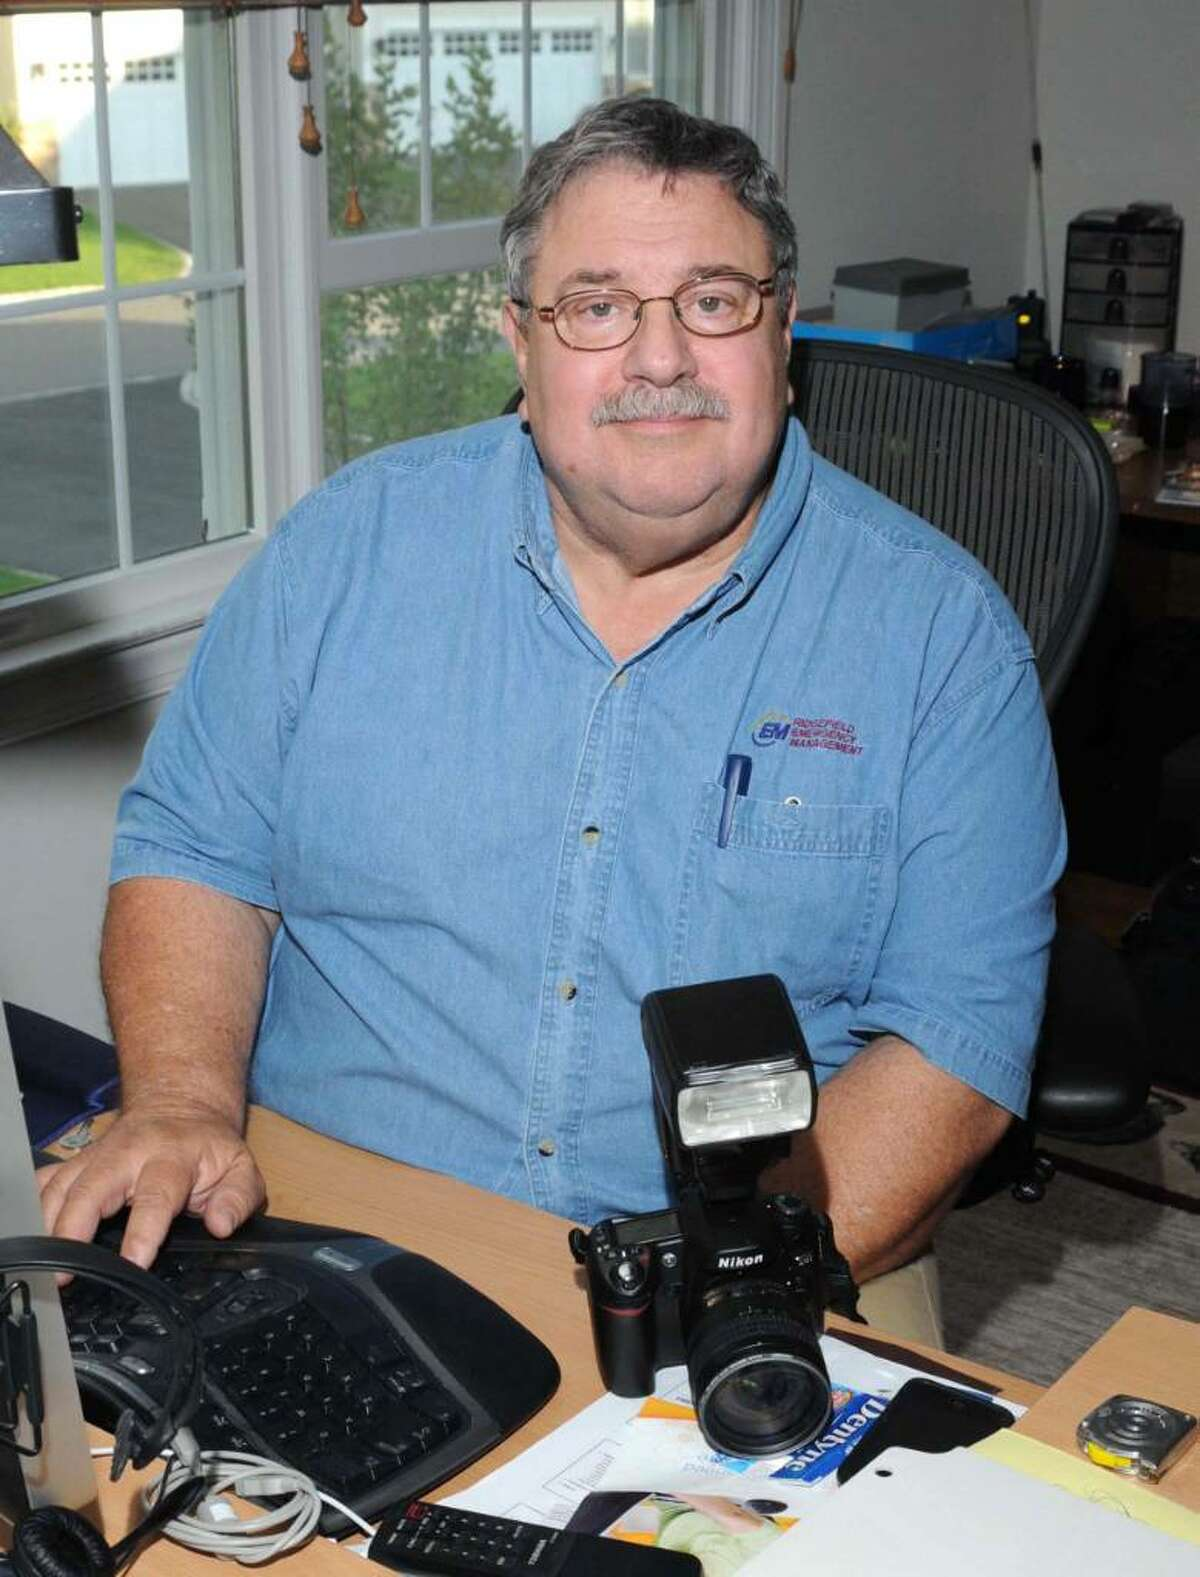 Dick Aarons, of Ridgefield, is a former Philadelpia newspaper police reporter and photographer who instructs police officers in crime scene photography.